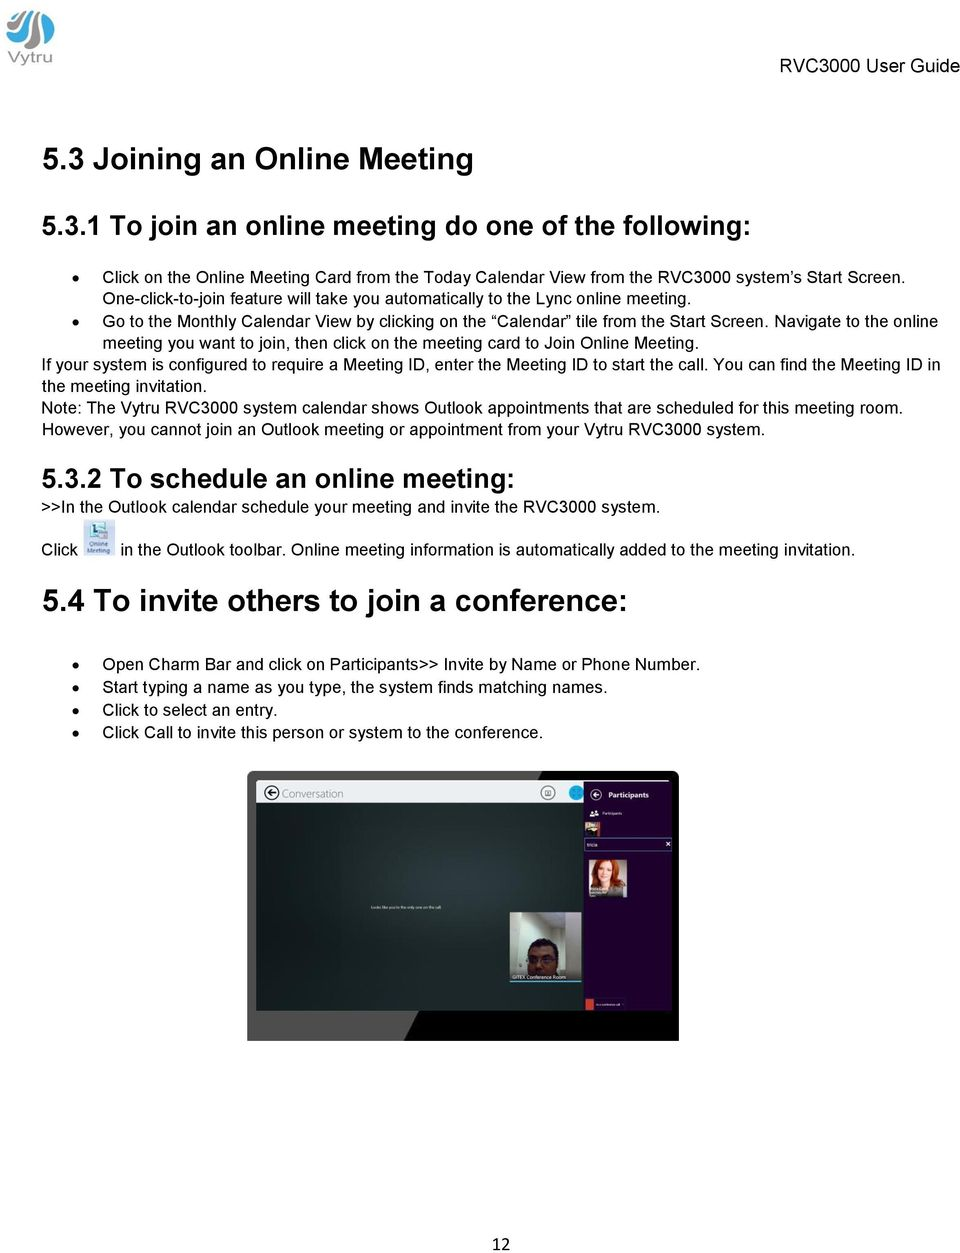 Navigate to the online meeting you want to join, then click on the meeting card to Join Online Meeting. If your system is configured to require a Meeting ID, enter the Meeting ID to start the call.